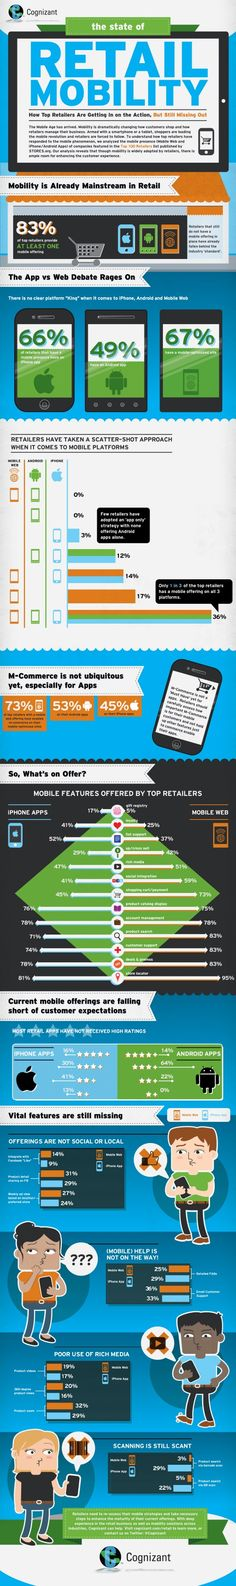 The State of Retail Mobility [Infographic]  								    				  					  							    				#infographics	 #Marketing #Mobile_marketing #retail Published June 7, 2012